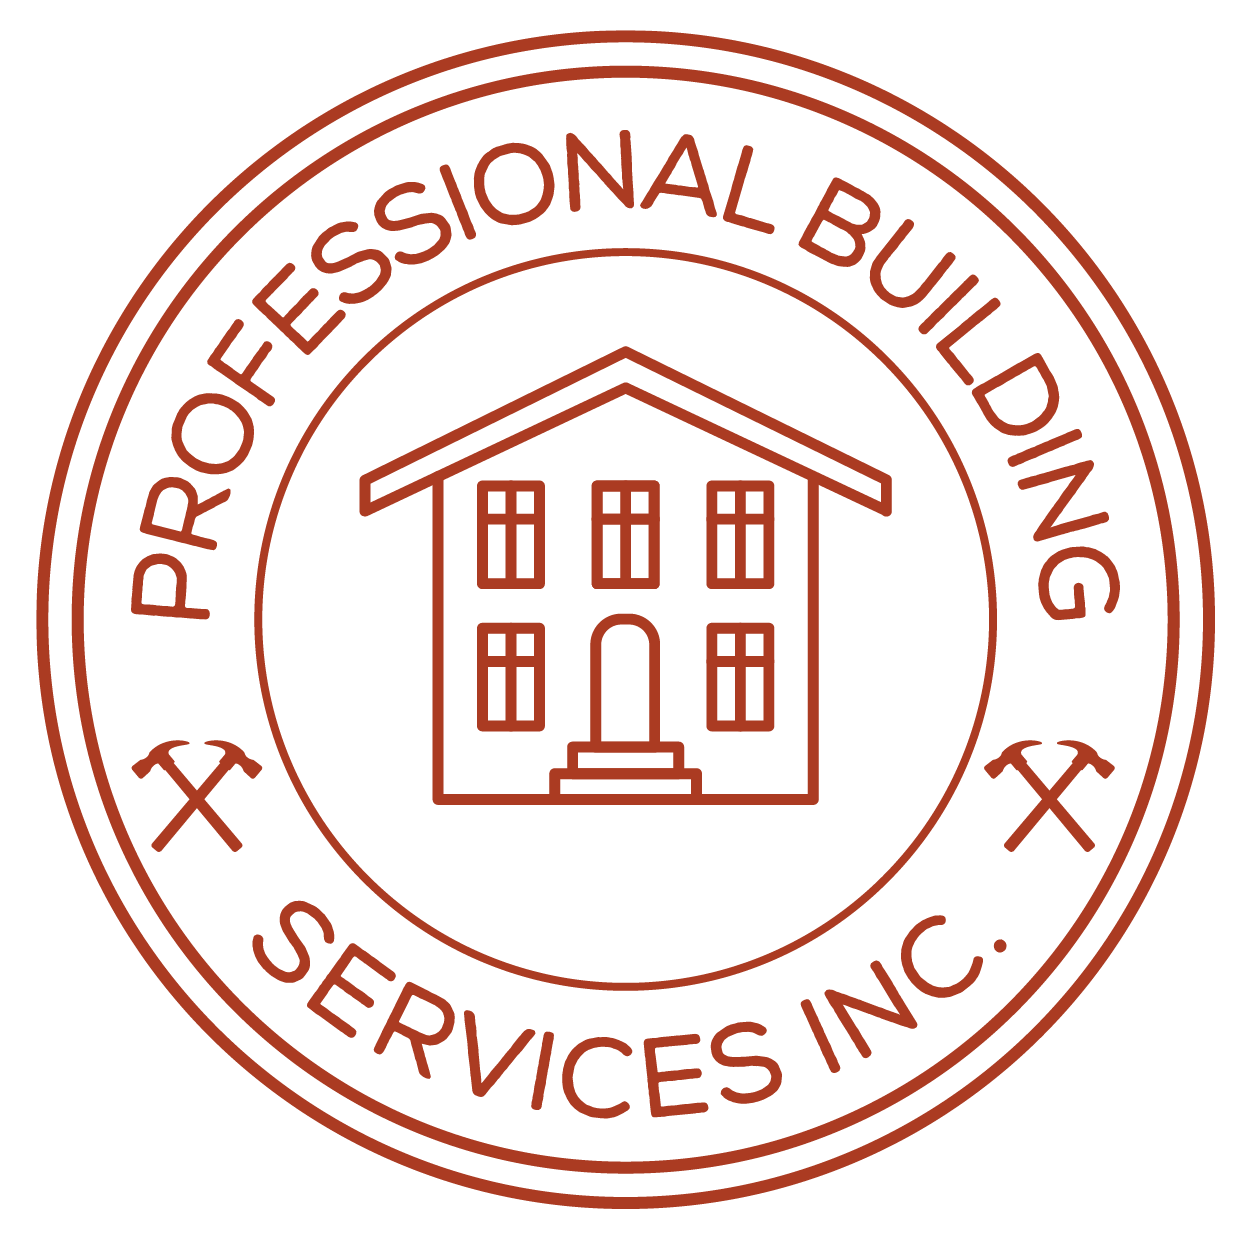 Professional Building Services Co.